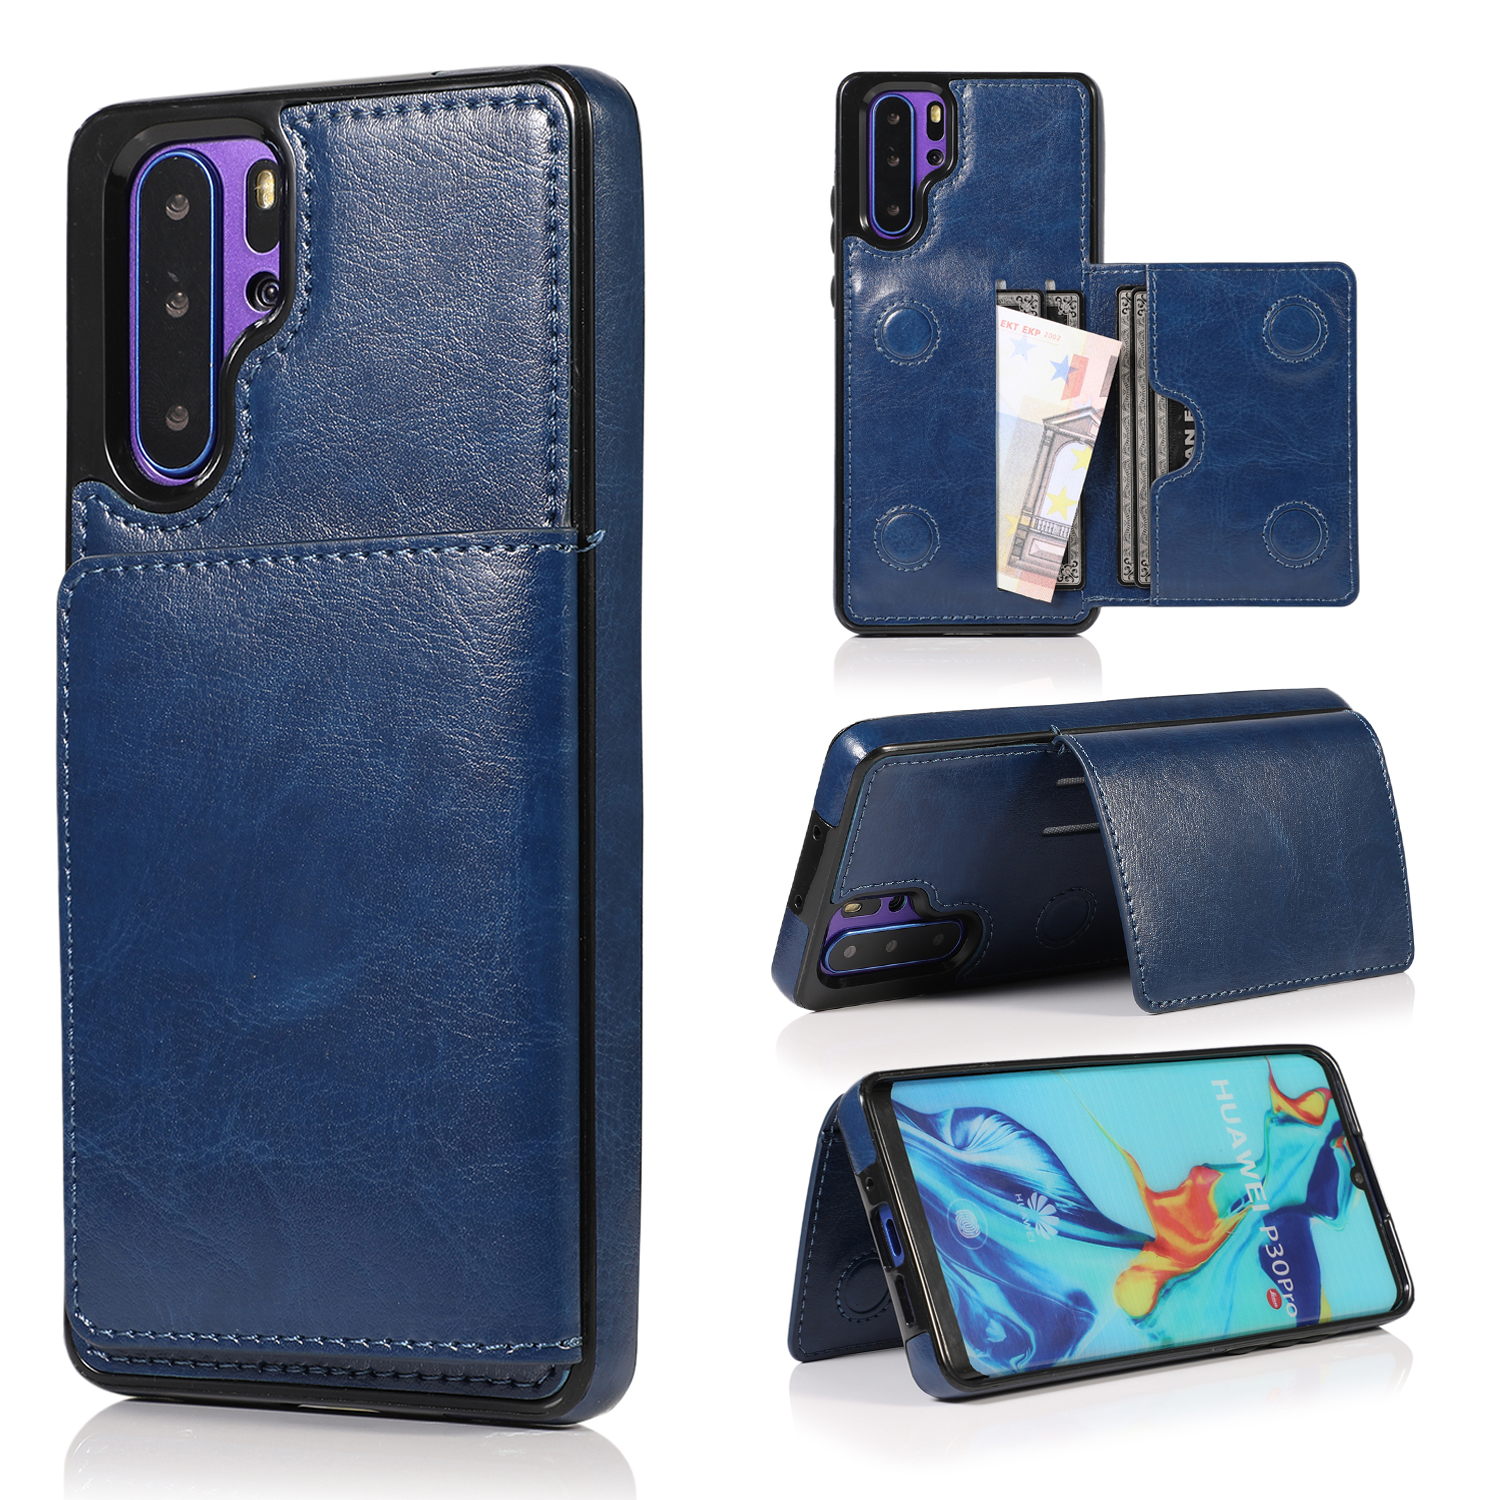 For Huawei Mate 20 P30 Lite Pro Maimang 7 Premium Card Slots Shockproof Resistant Hybrid Protective Phone Case Back Casing Cover